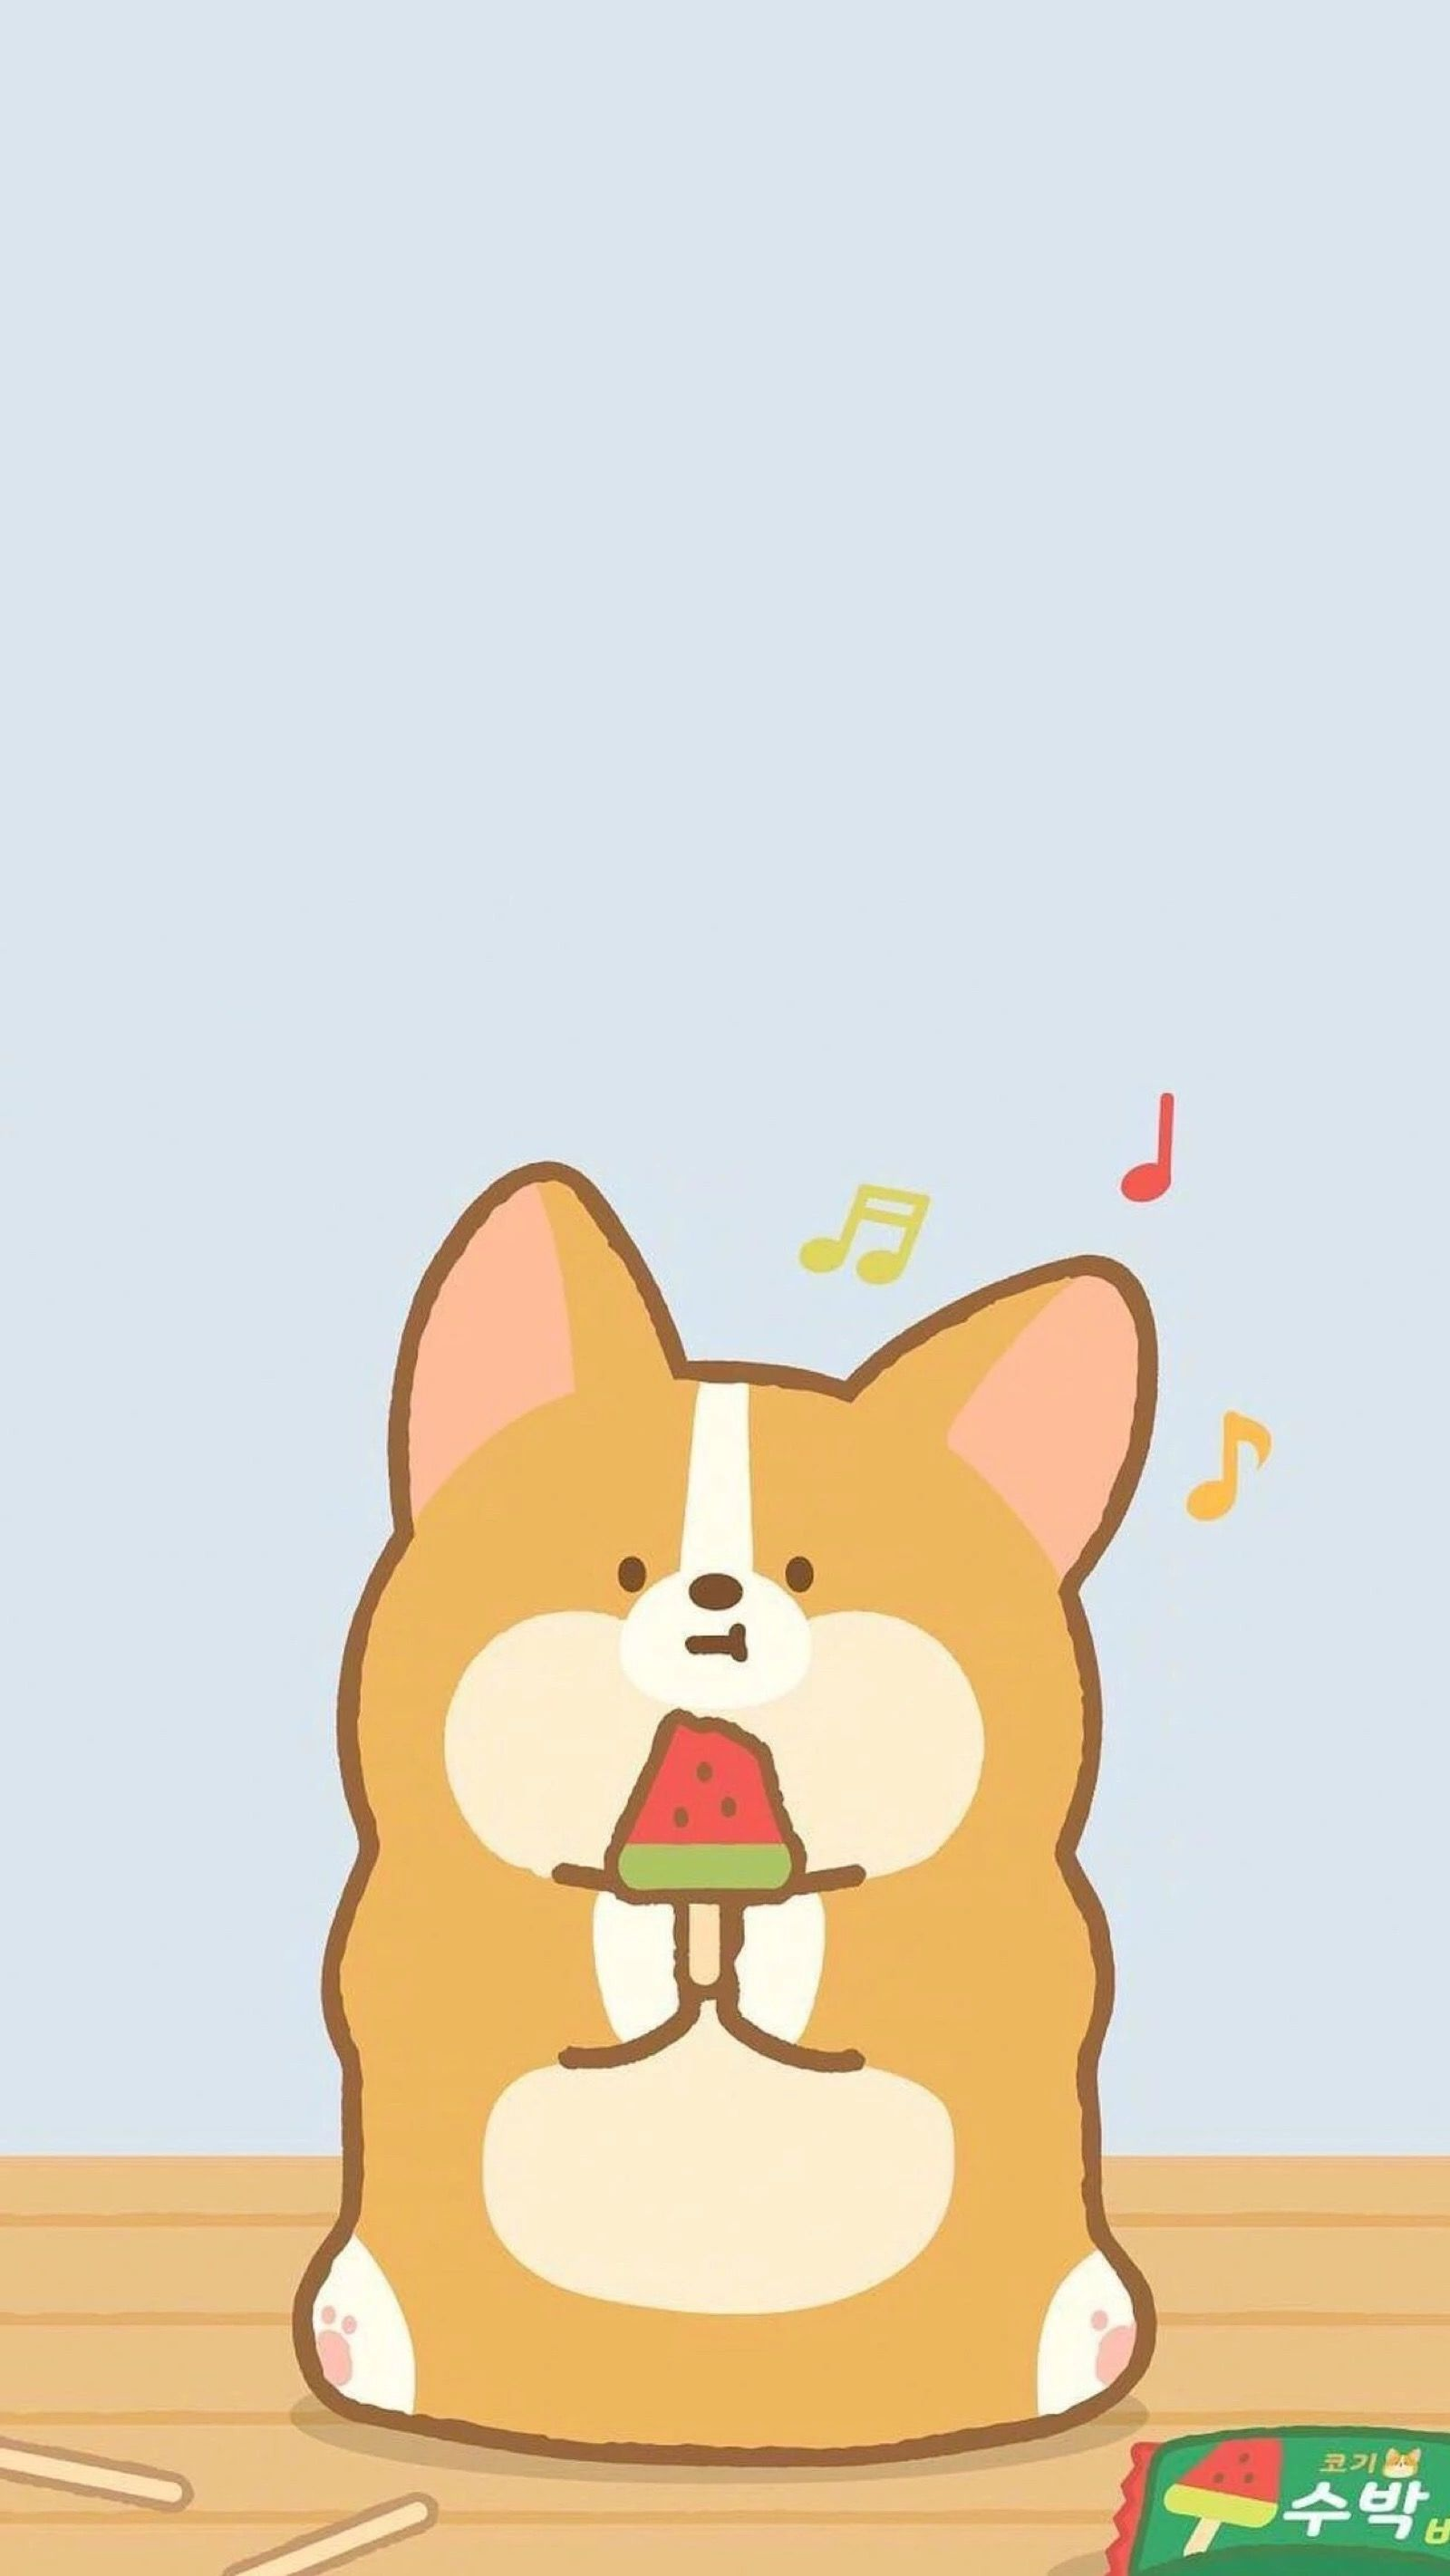 Pin By Xzombie Catx On Misc Art That I Love Cartoon Wallpaper Iphone Puppy Cartoon Cute Wallpapers